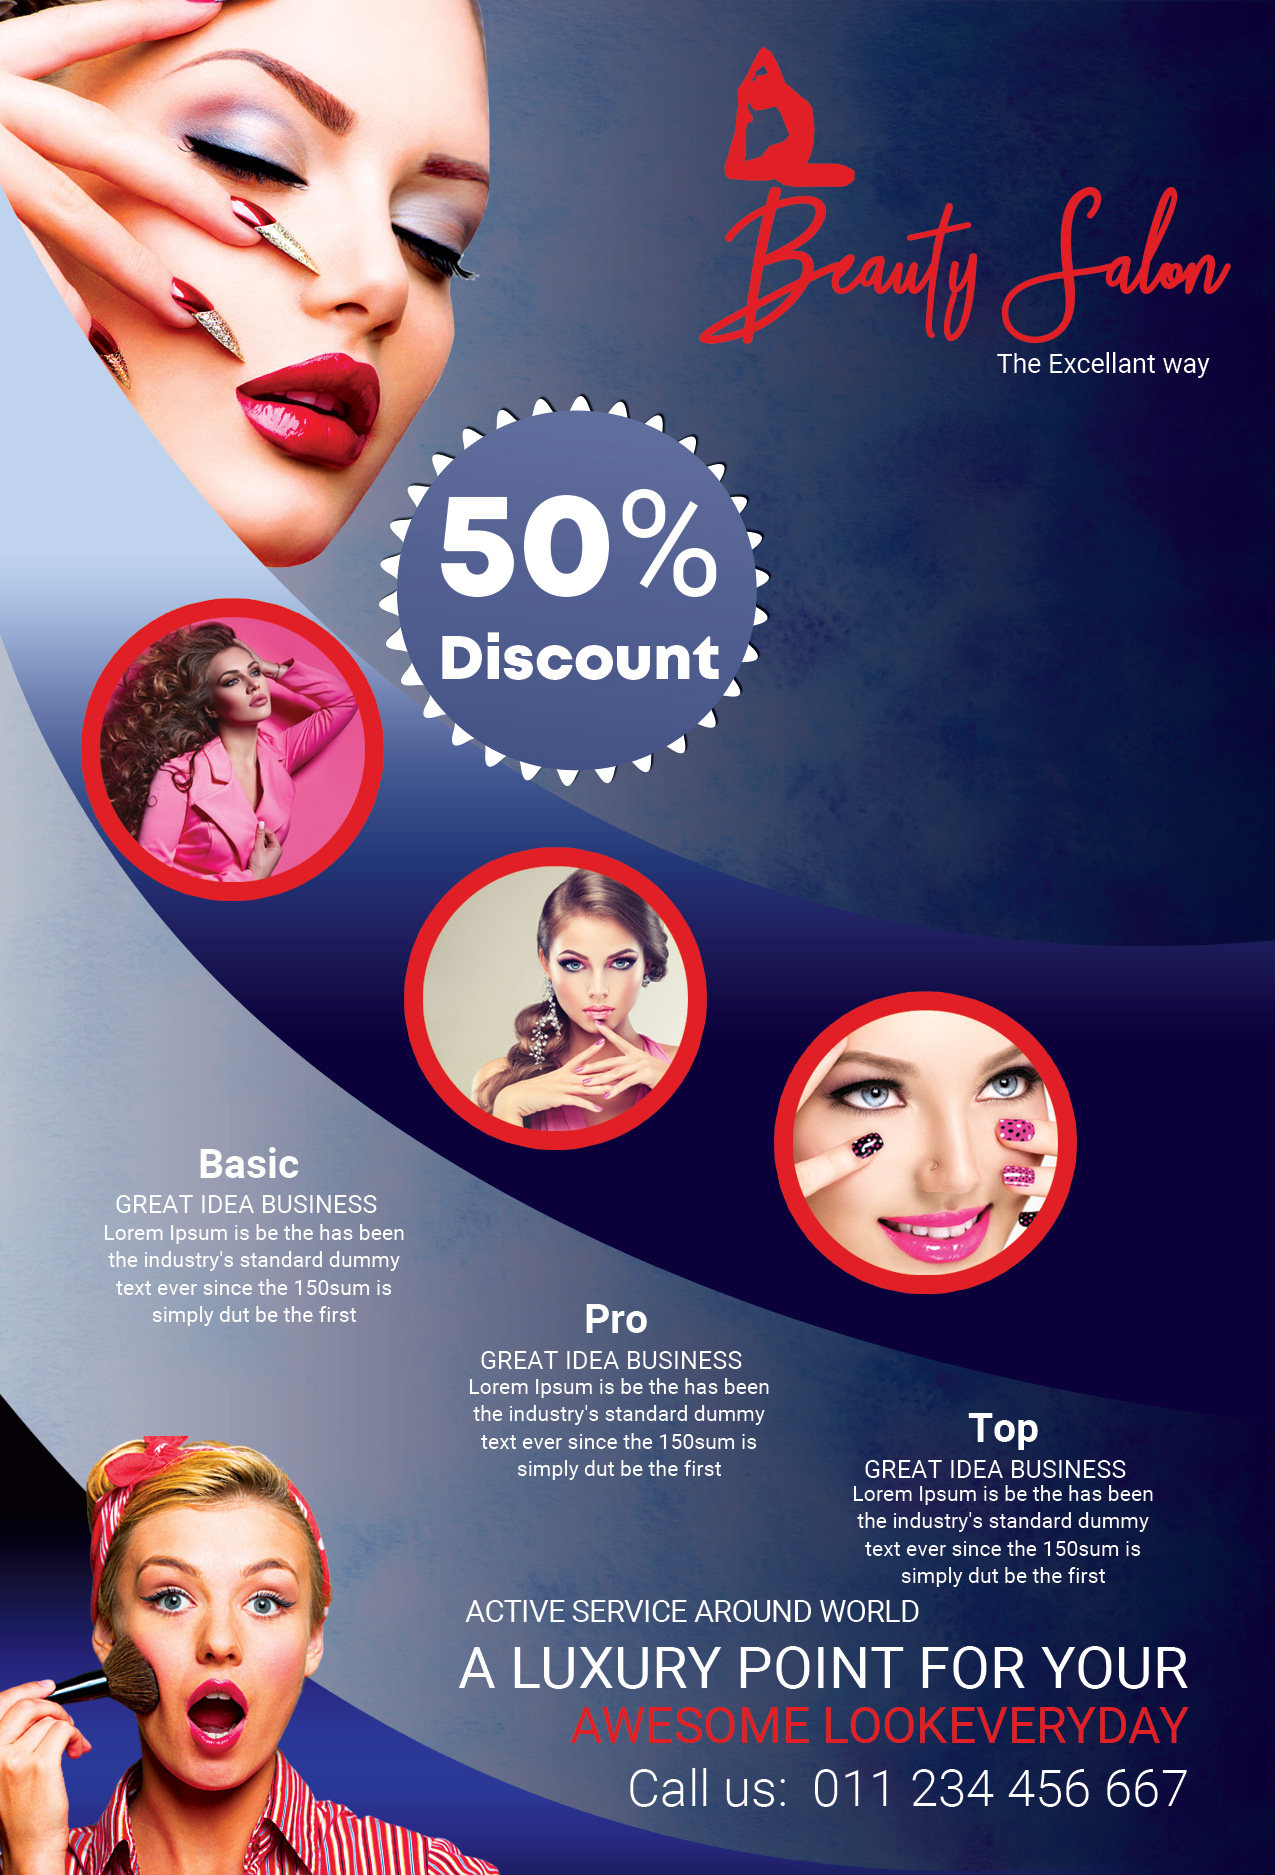 Makeup Beauty Salon Free Psd Flyer Template By Studioflyers On Deviantart